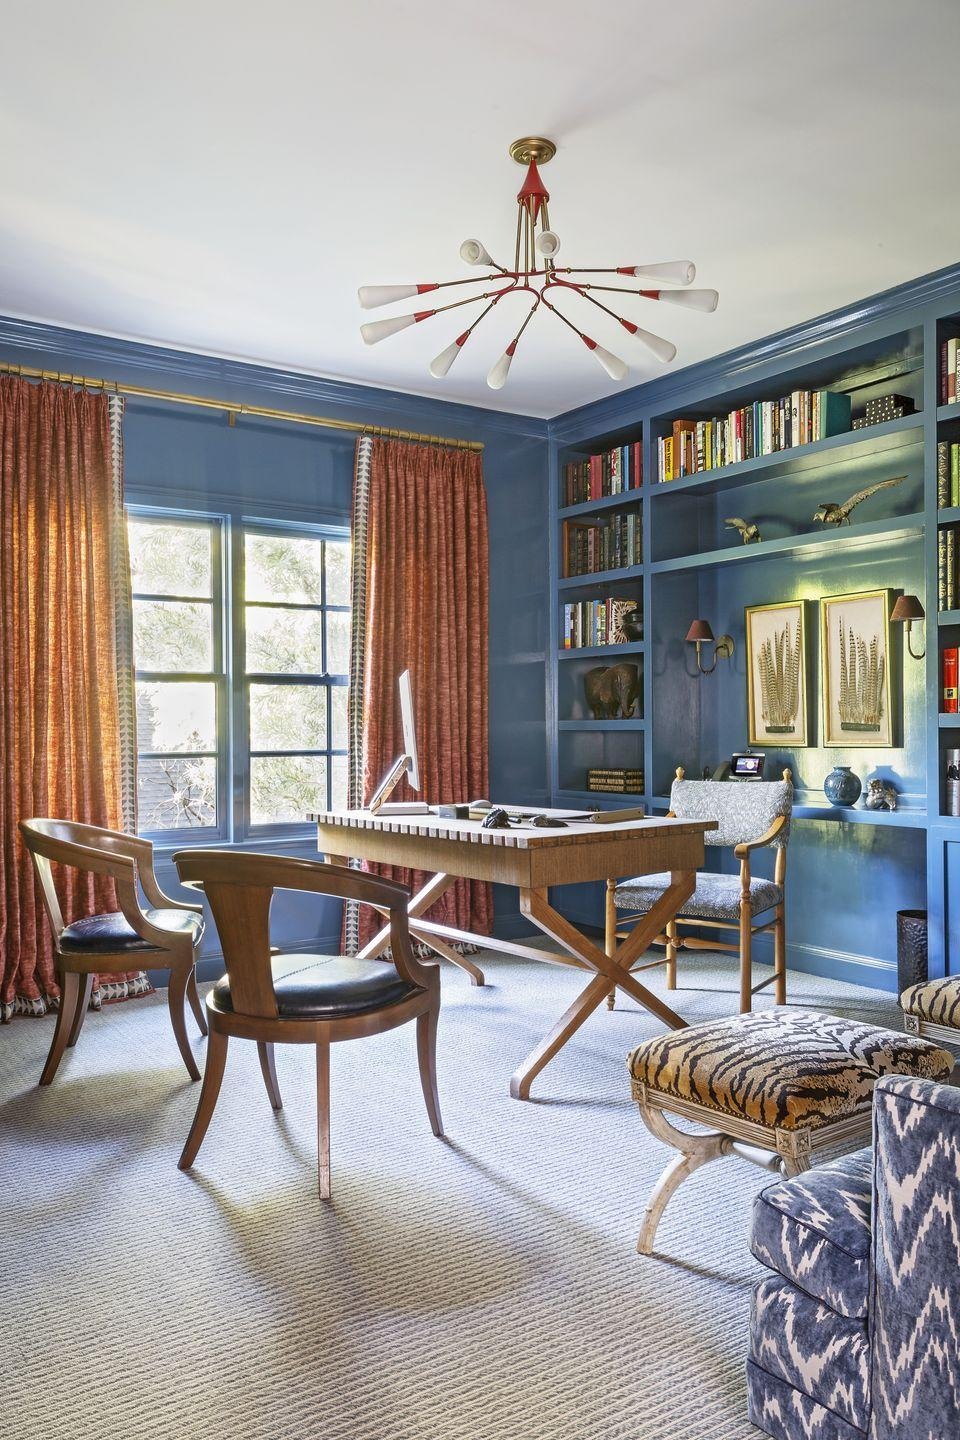 "<p>It's no secret we love lacquer, and <a href=""https://www.veranda.com/decorating-ideas/house-tours/a34883406/angie-hranowsky-austin-house-tour/"" rel=""nofollow noopener"" target=""_blank"" data-ylk=""slk:this artistic Austin home office designed by Angie Hranowsky"" class=""link rapid-noclick-resp"">this artistic Austin home office designed by Angie Hranowsky</a> is the perfect place to bring vibrance to a workspace. Accented with light wood, a funky blend of patterns, modern lighting, and built-ins full of objets d' art, this space is ideal for any creative looking to zhush up their four walls.</p>"